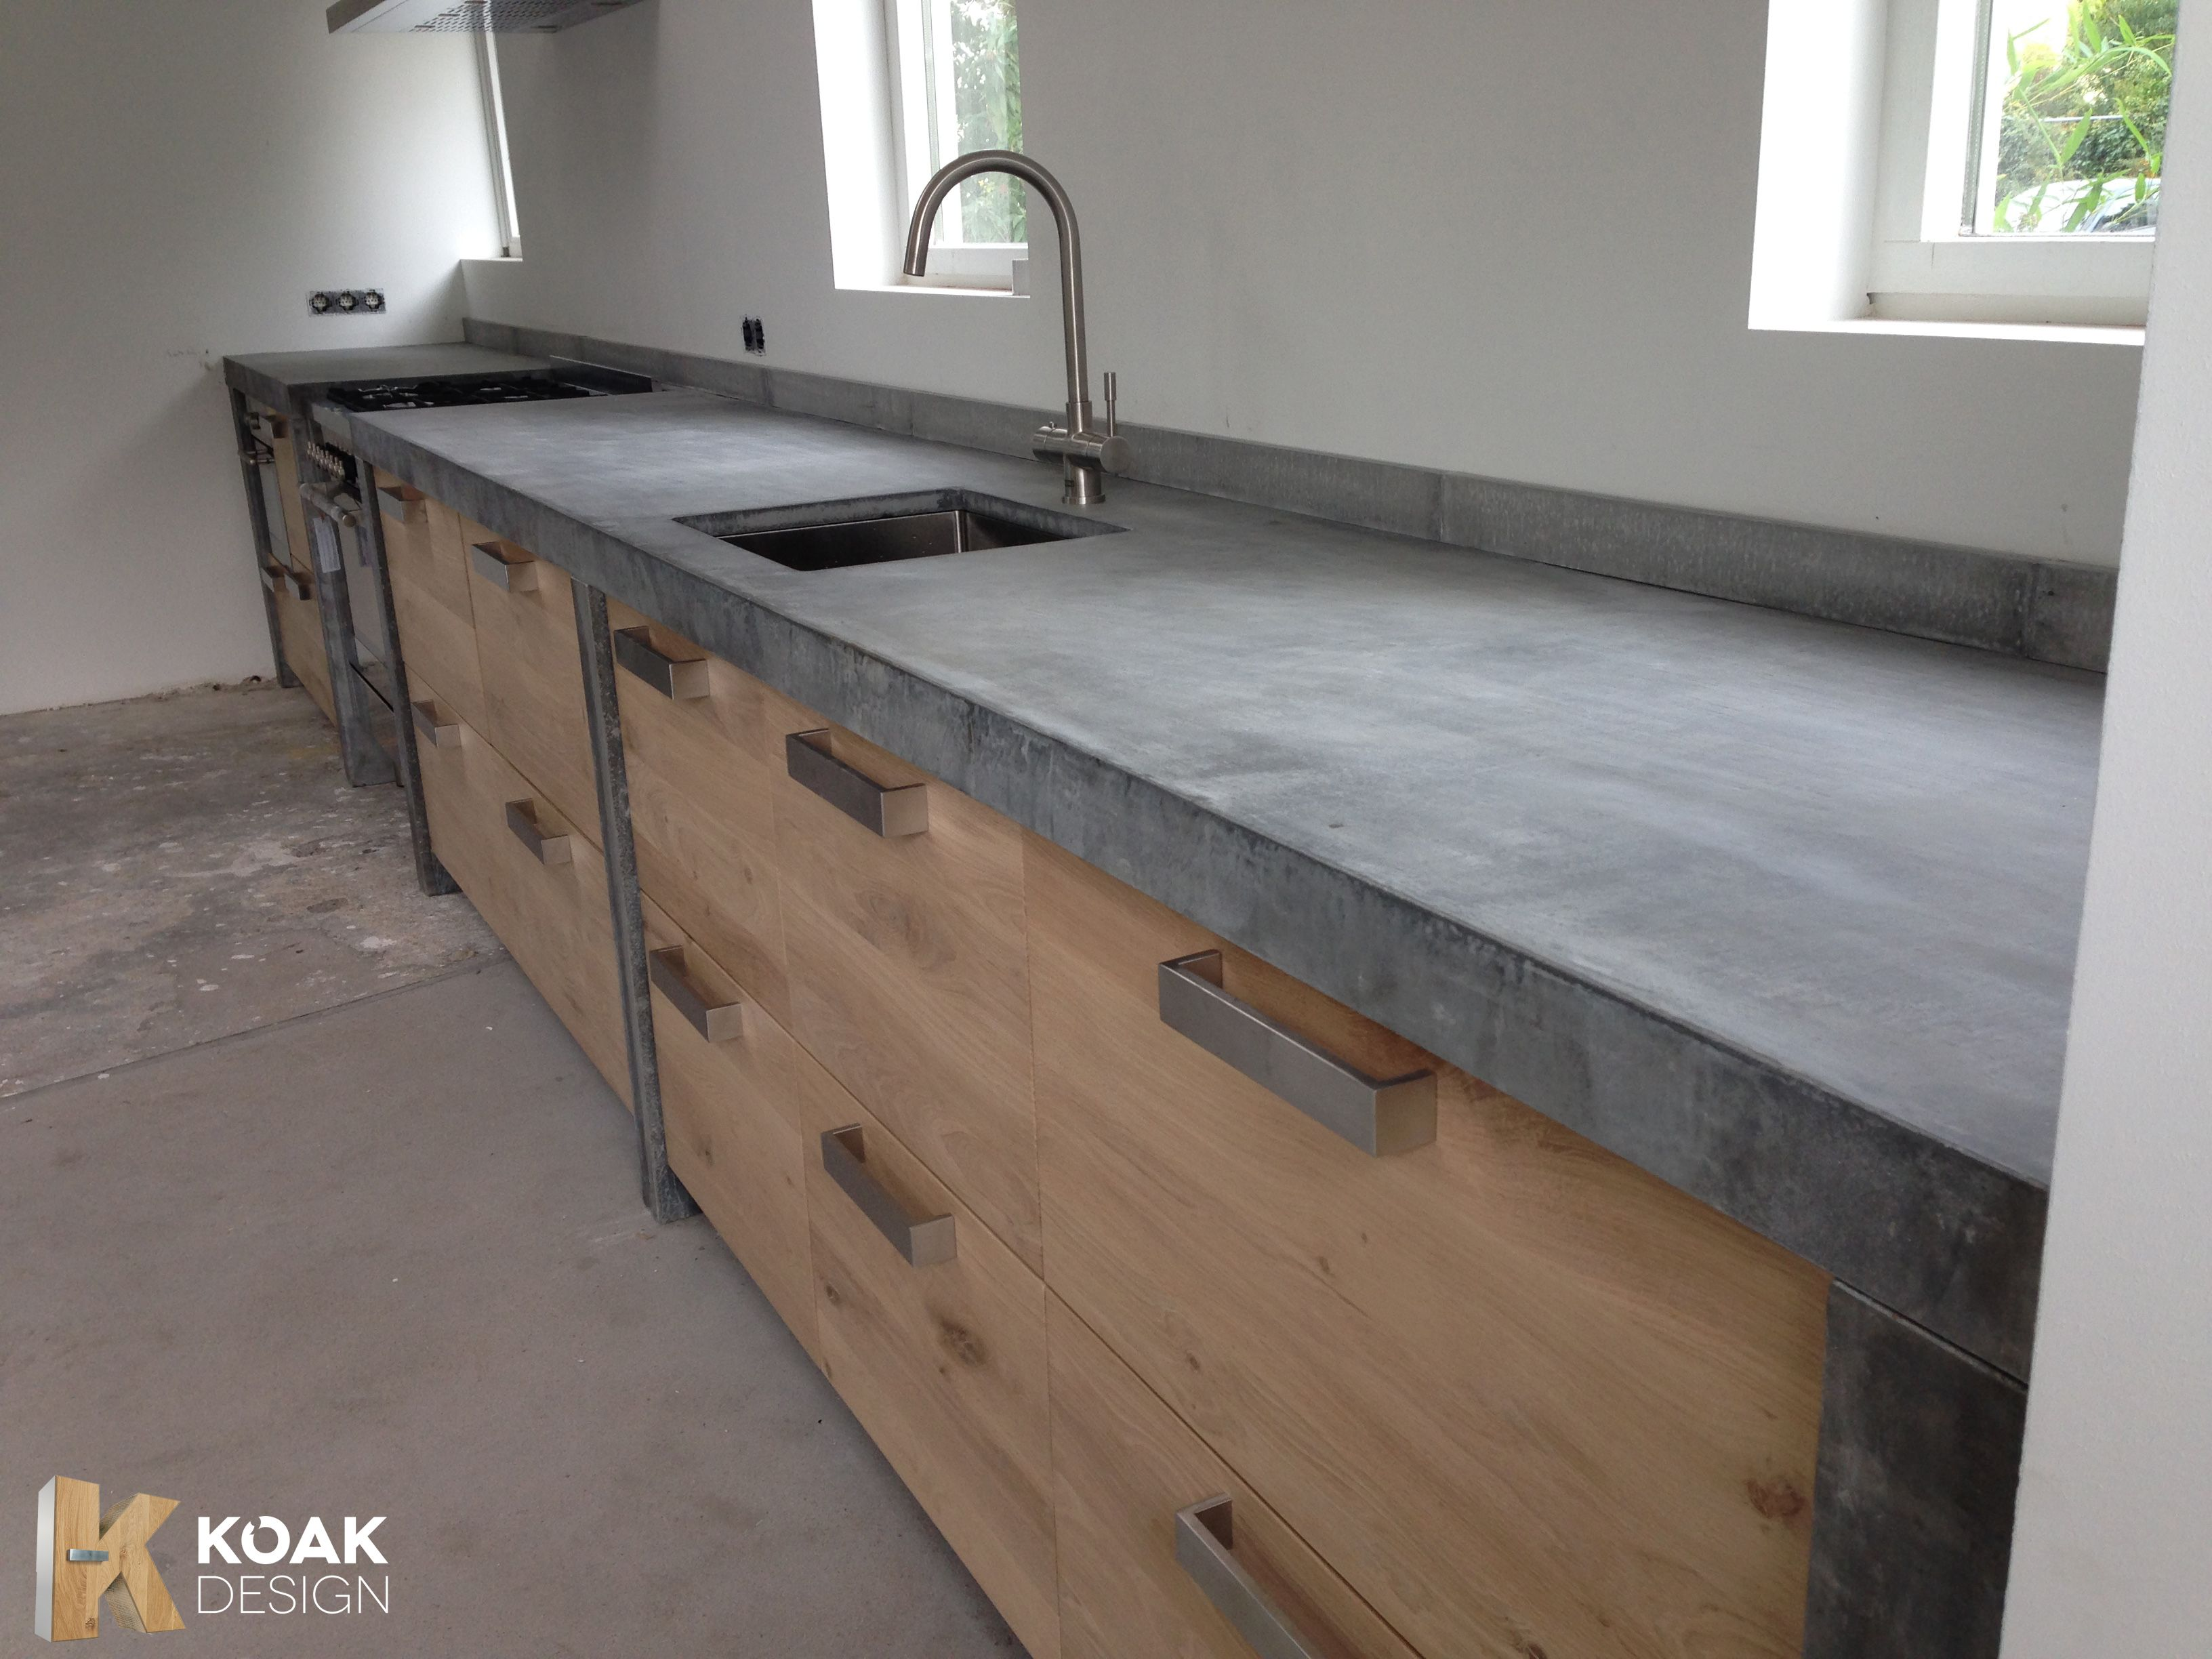 Neue Ikea Küche Metod Betonkueche Concrete Kitchen Concrete Works By Dade